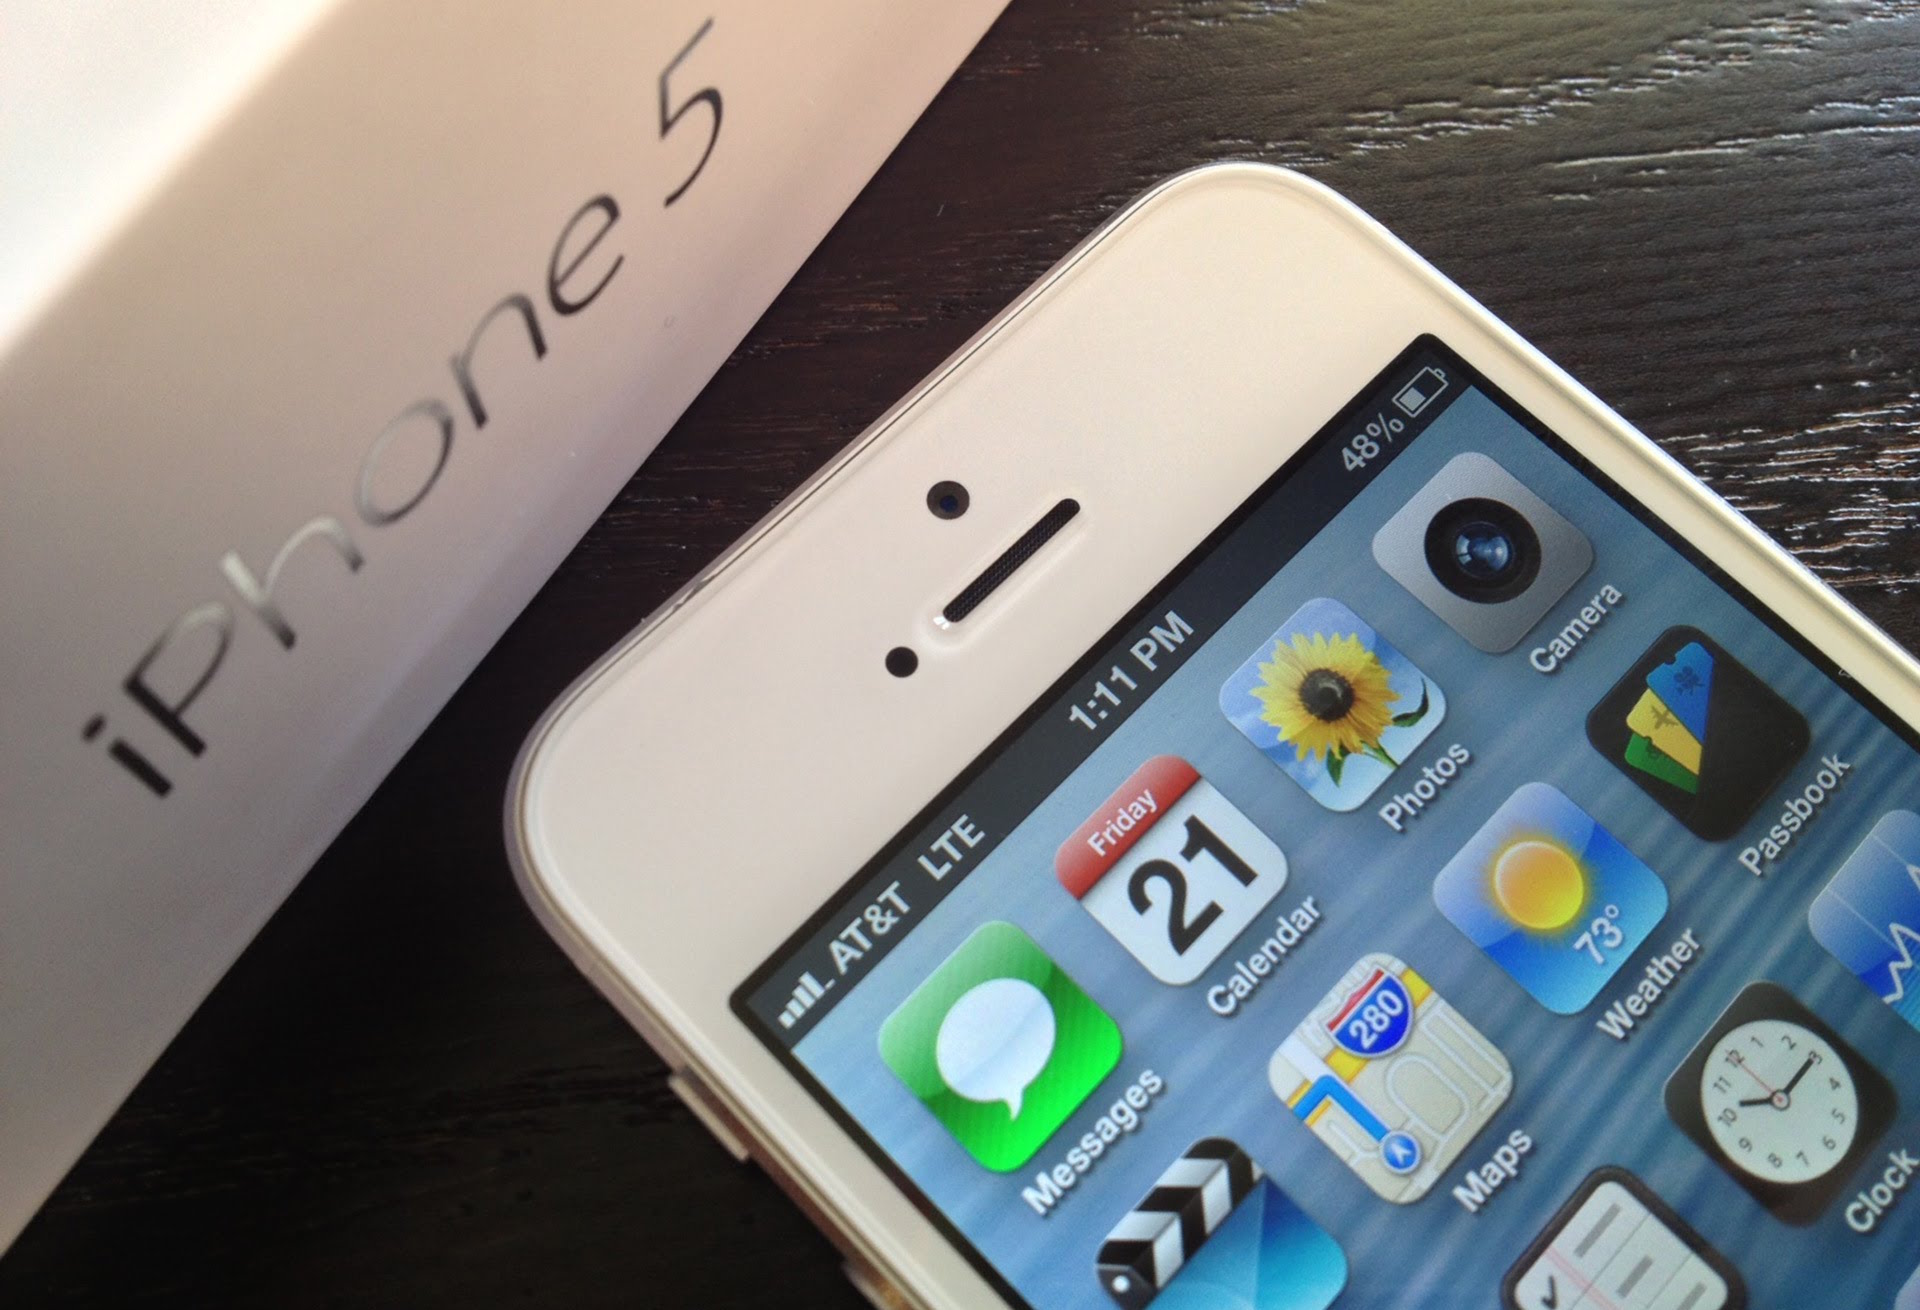 iPhone 5 to support the Russian LTE frequency